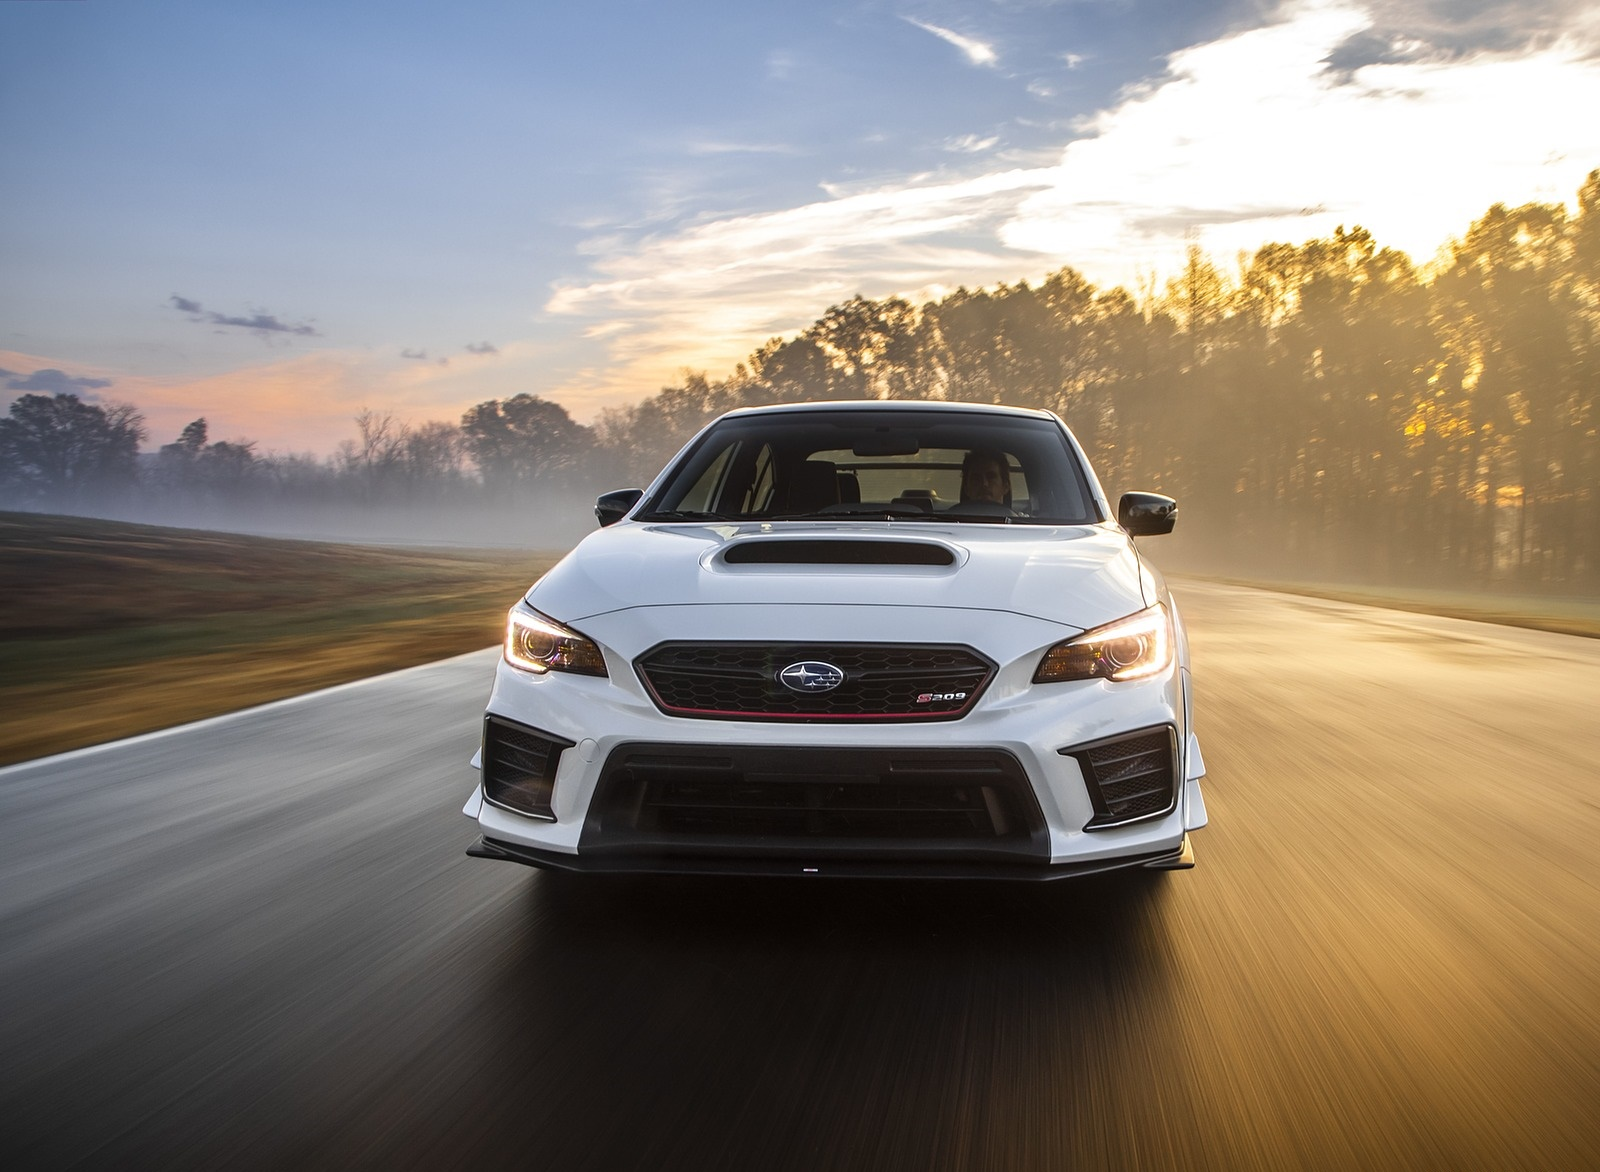 2019 Subaru WRX STI S209 Front Wallpapers (1)